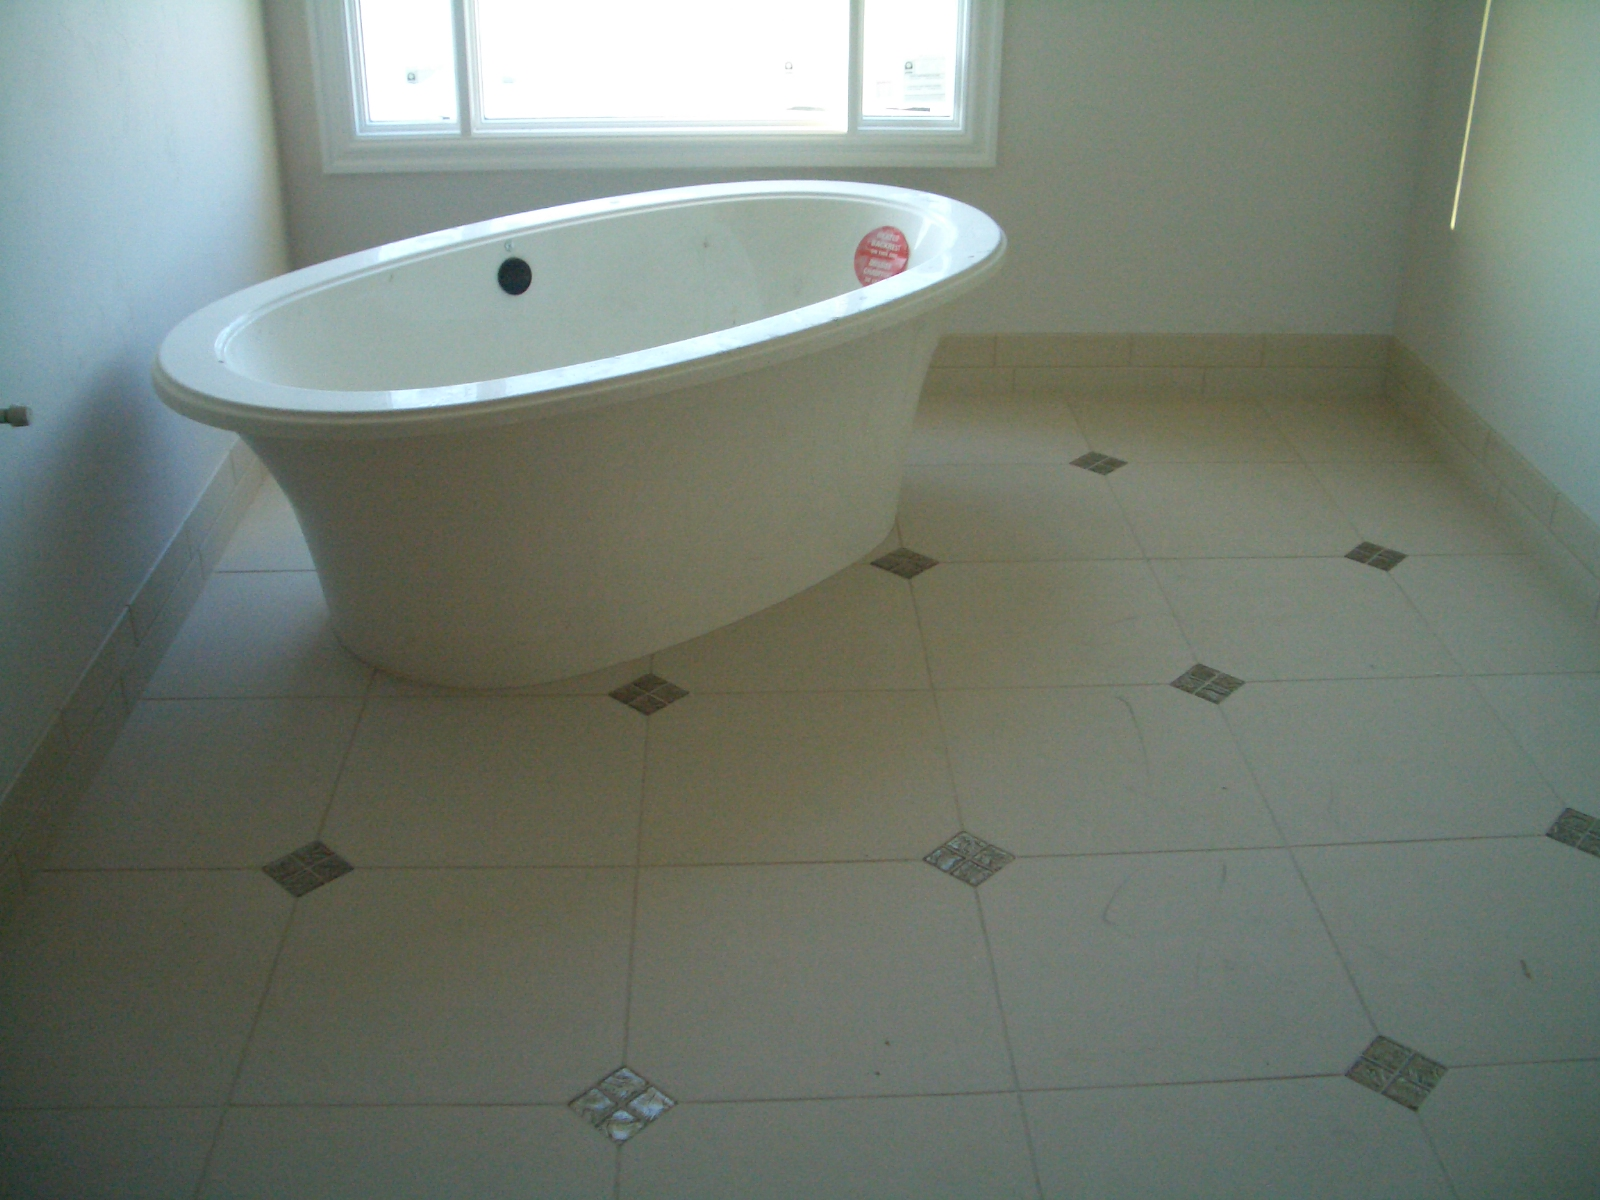 Magnificent Glass Floor Tile Bathroom Of With A Bit Of Planning And Some